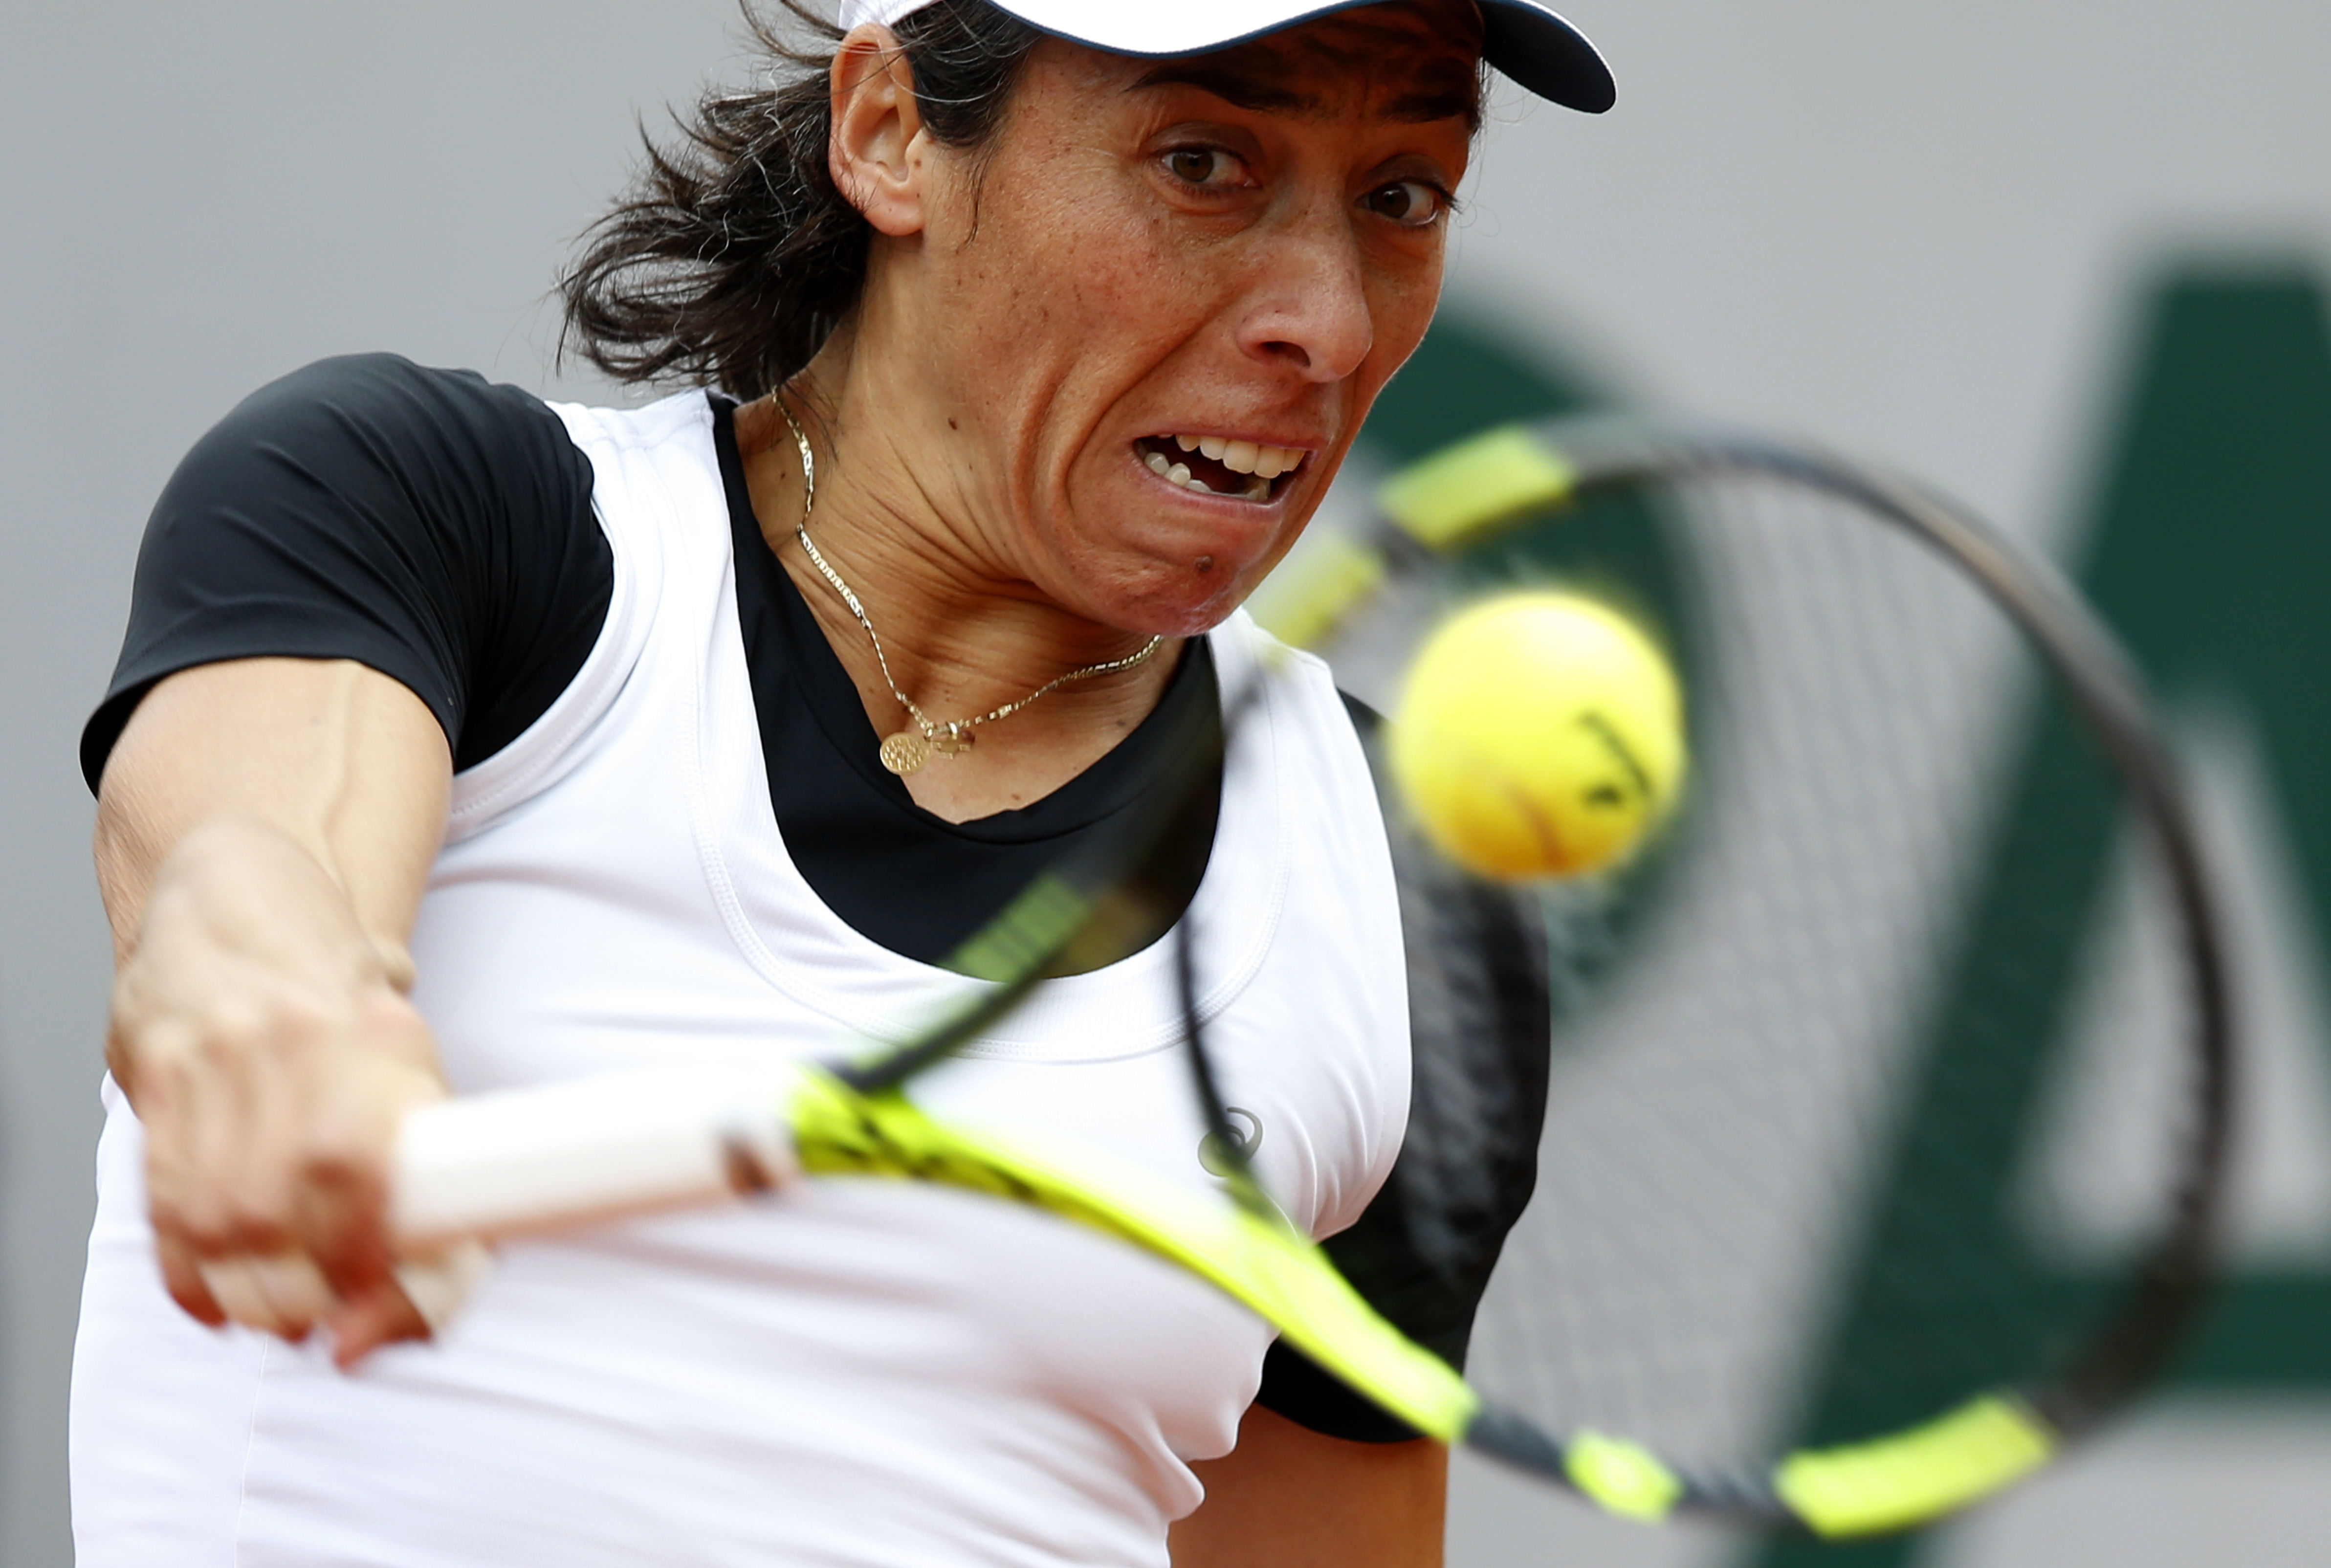 Italy's Francesca Schiavone returns the ball to France's Kristina Mladenovic during their first round match of the French Open tennis tournament at the Roland Garros stadium, Tuesday, May 24, 2016 in Paris.  (AP Photo/Alastair Grant)